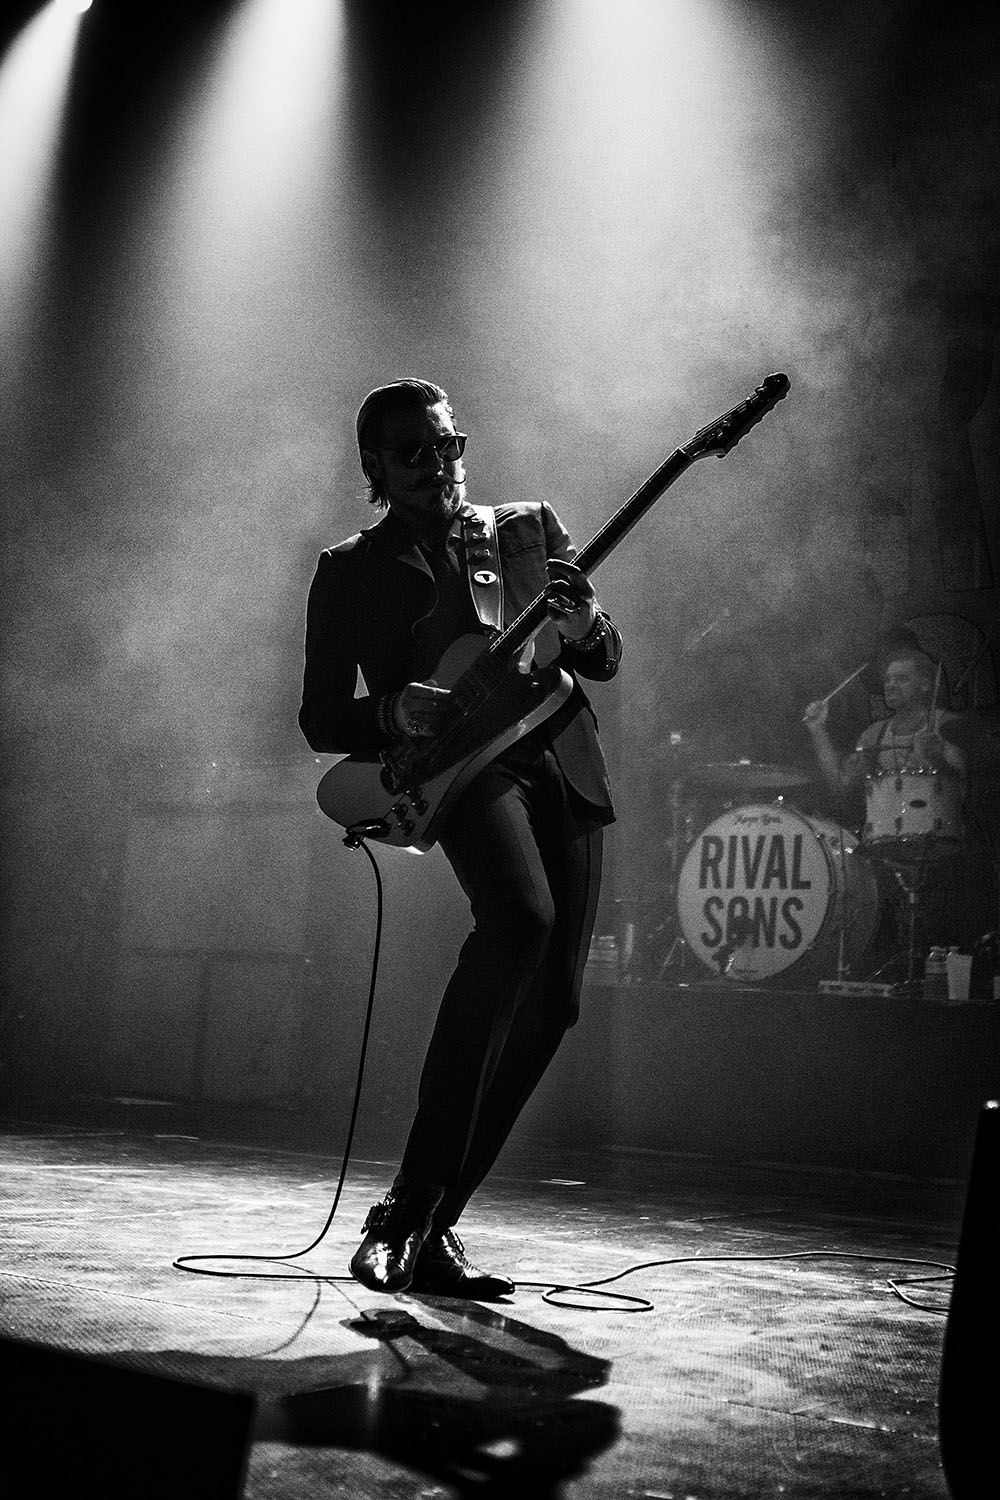 Rival Sons 02